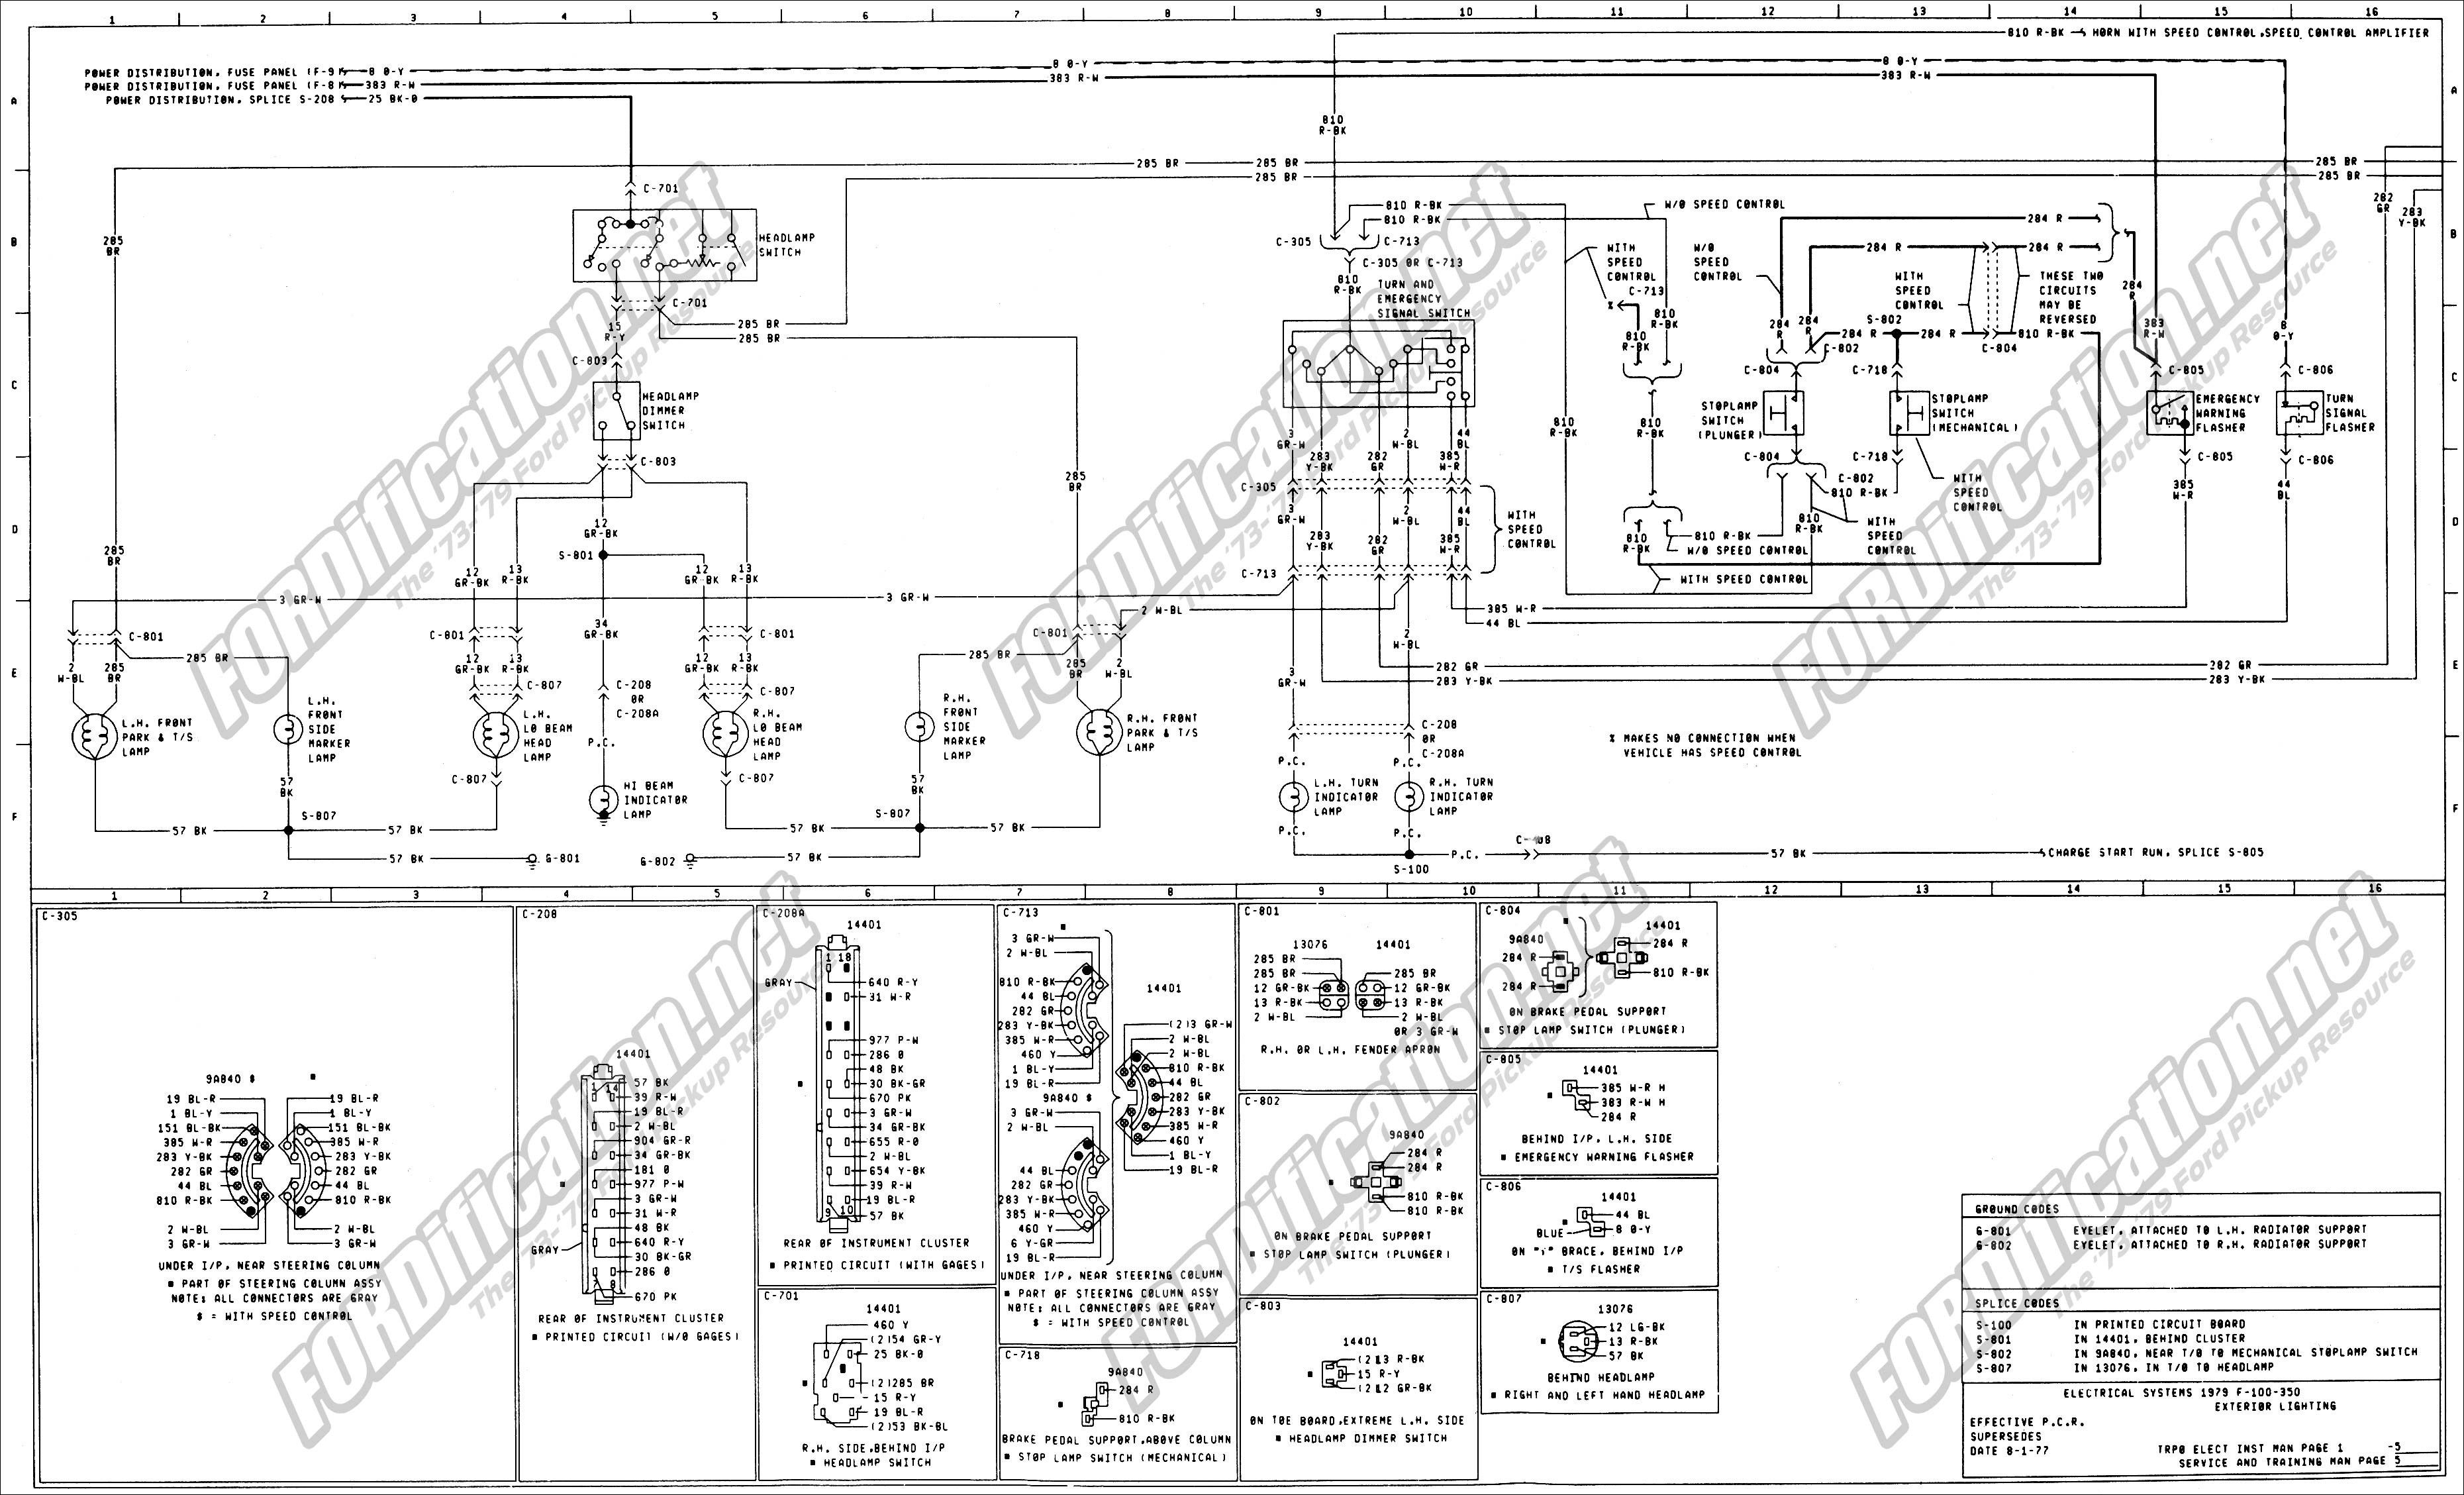 1973 1979 Ford Truck Wiring Diagrams Schematics Ford F150 Diagram Ford Fusion